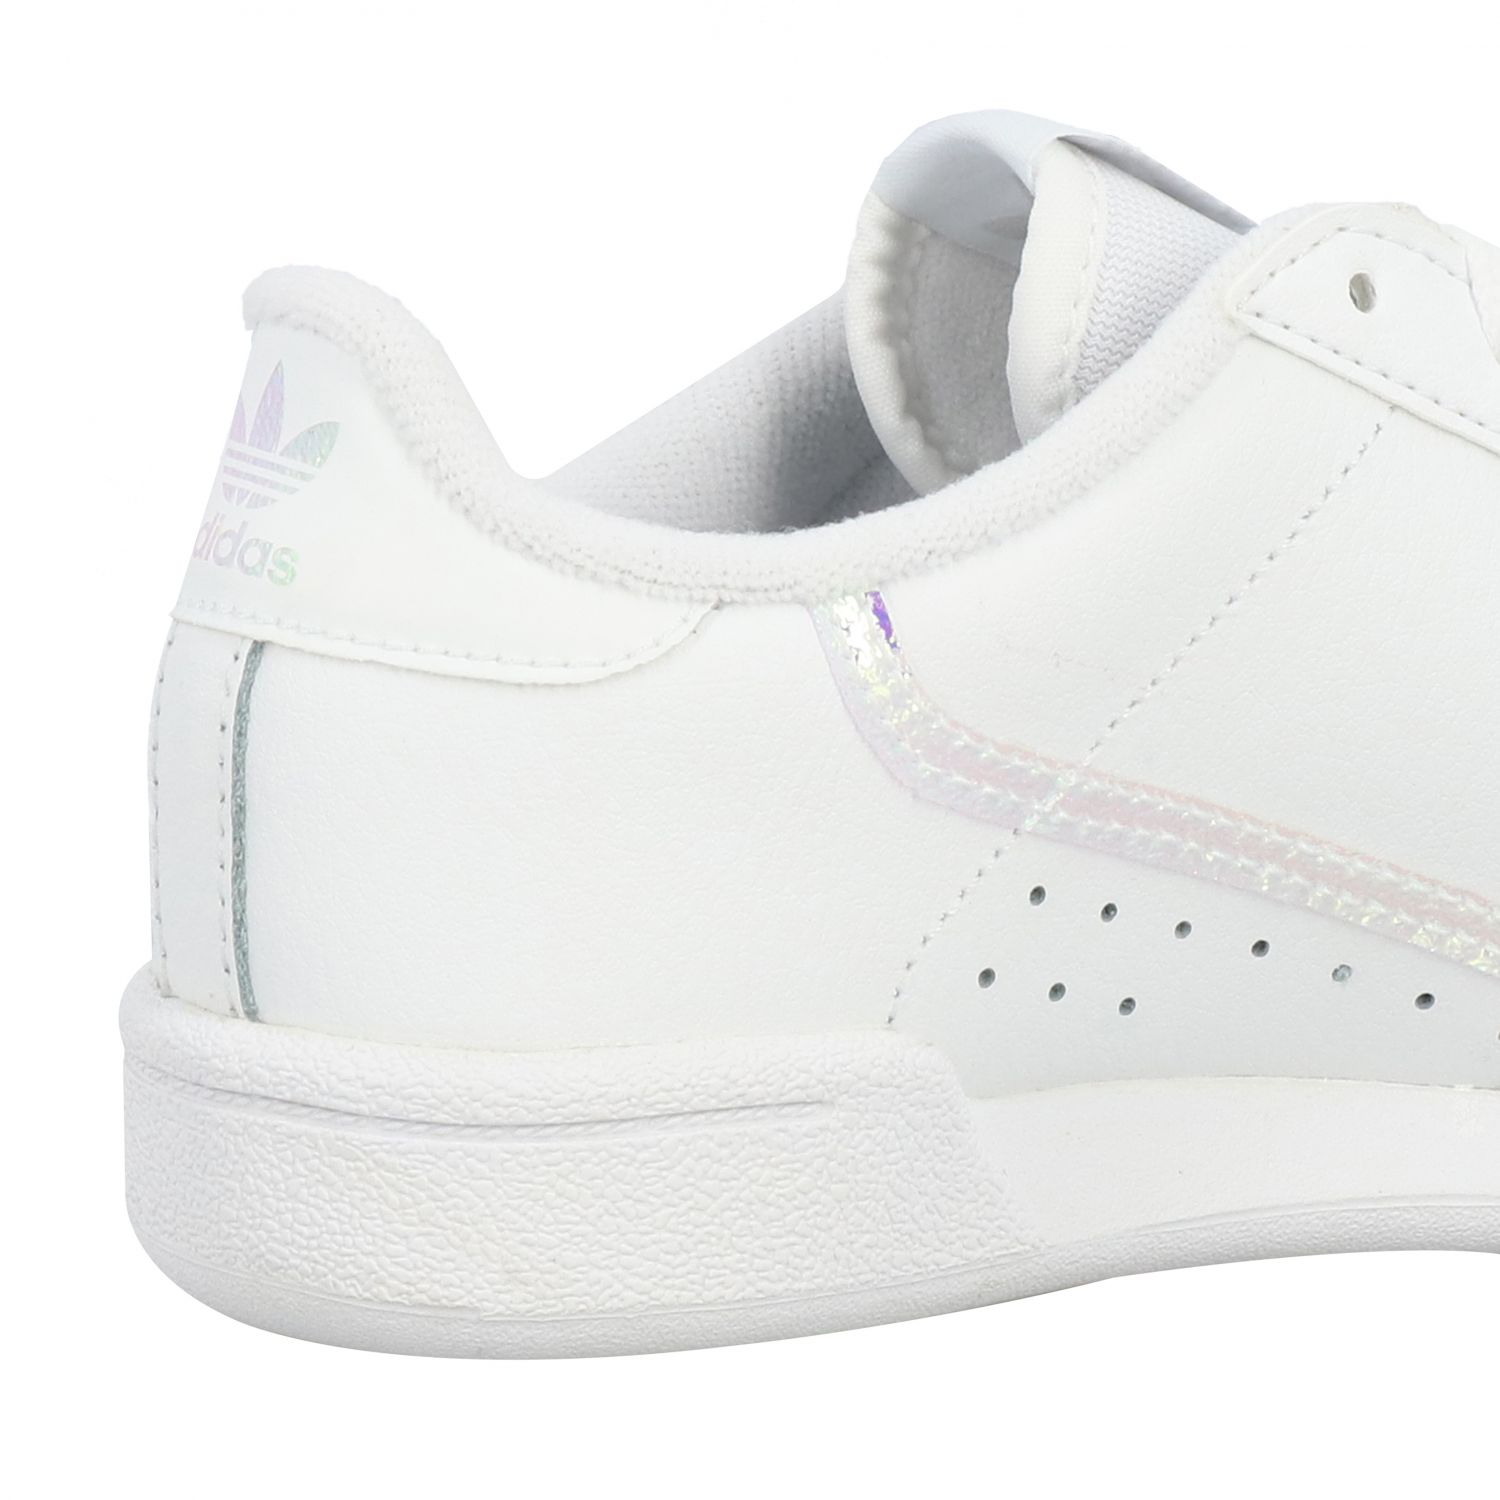 Scarpe Adidas Originals: Sneakers Continental 80 Adidas Originals in pelle bianco 5